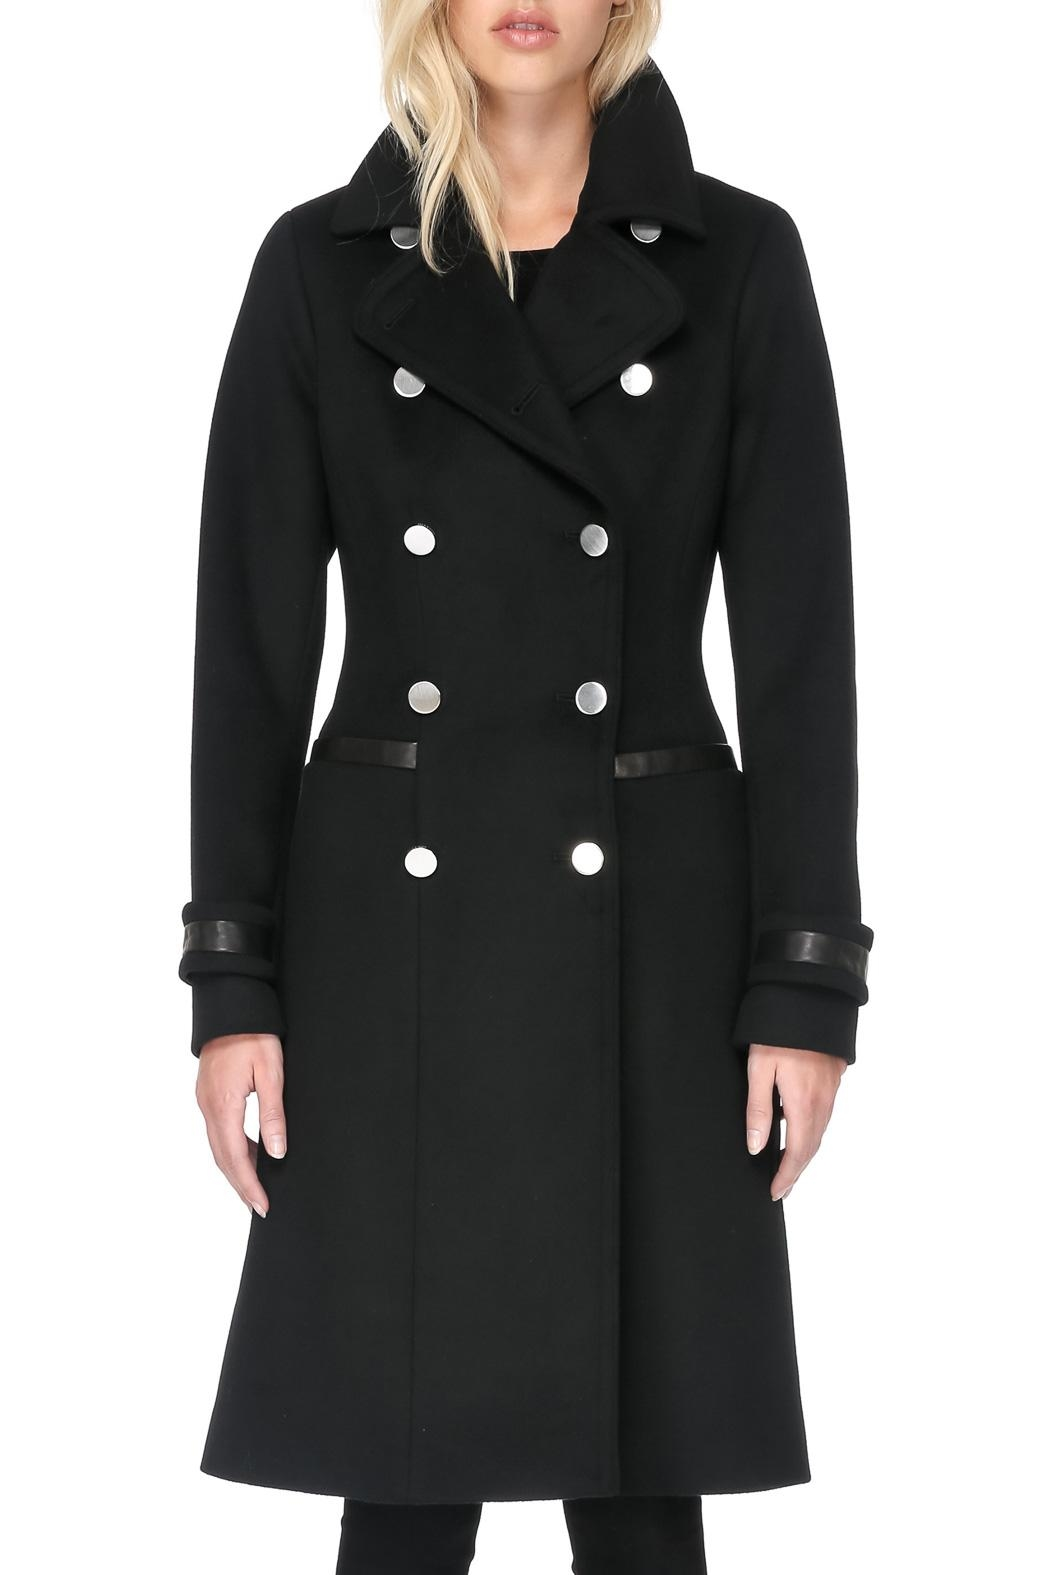 Soia & Kyo Julianna Wool Coat - Main Image